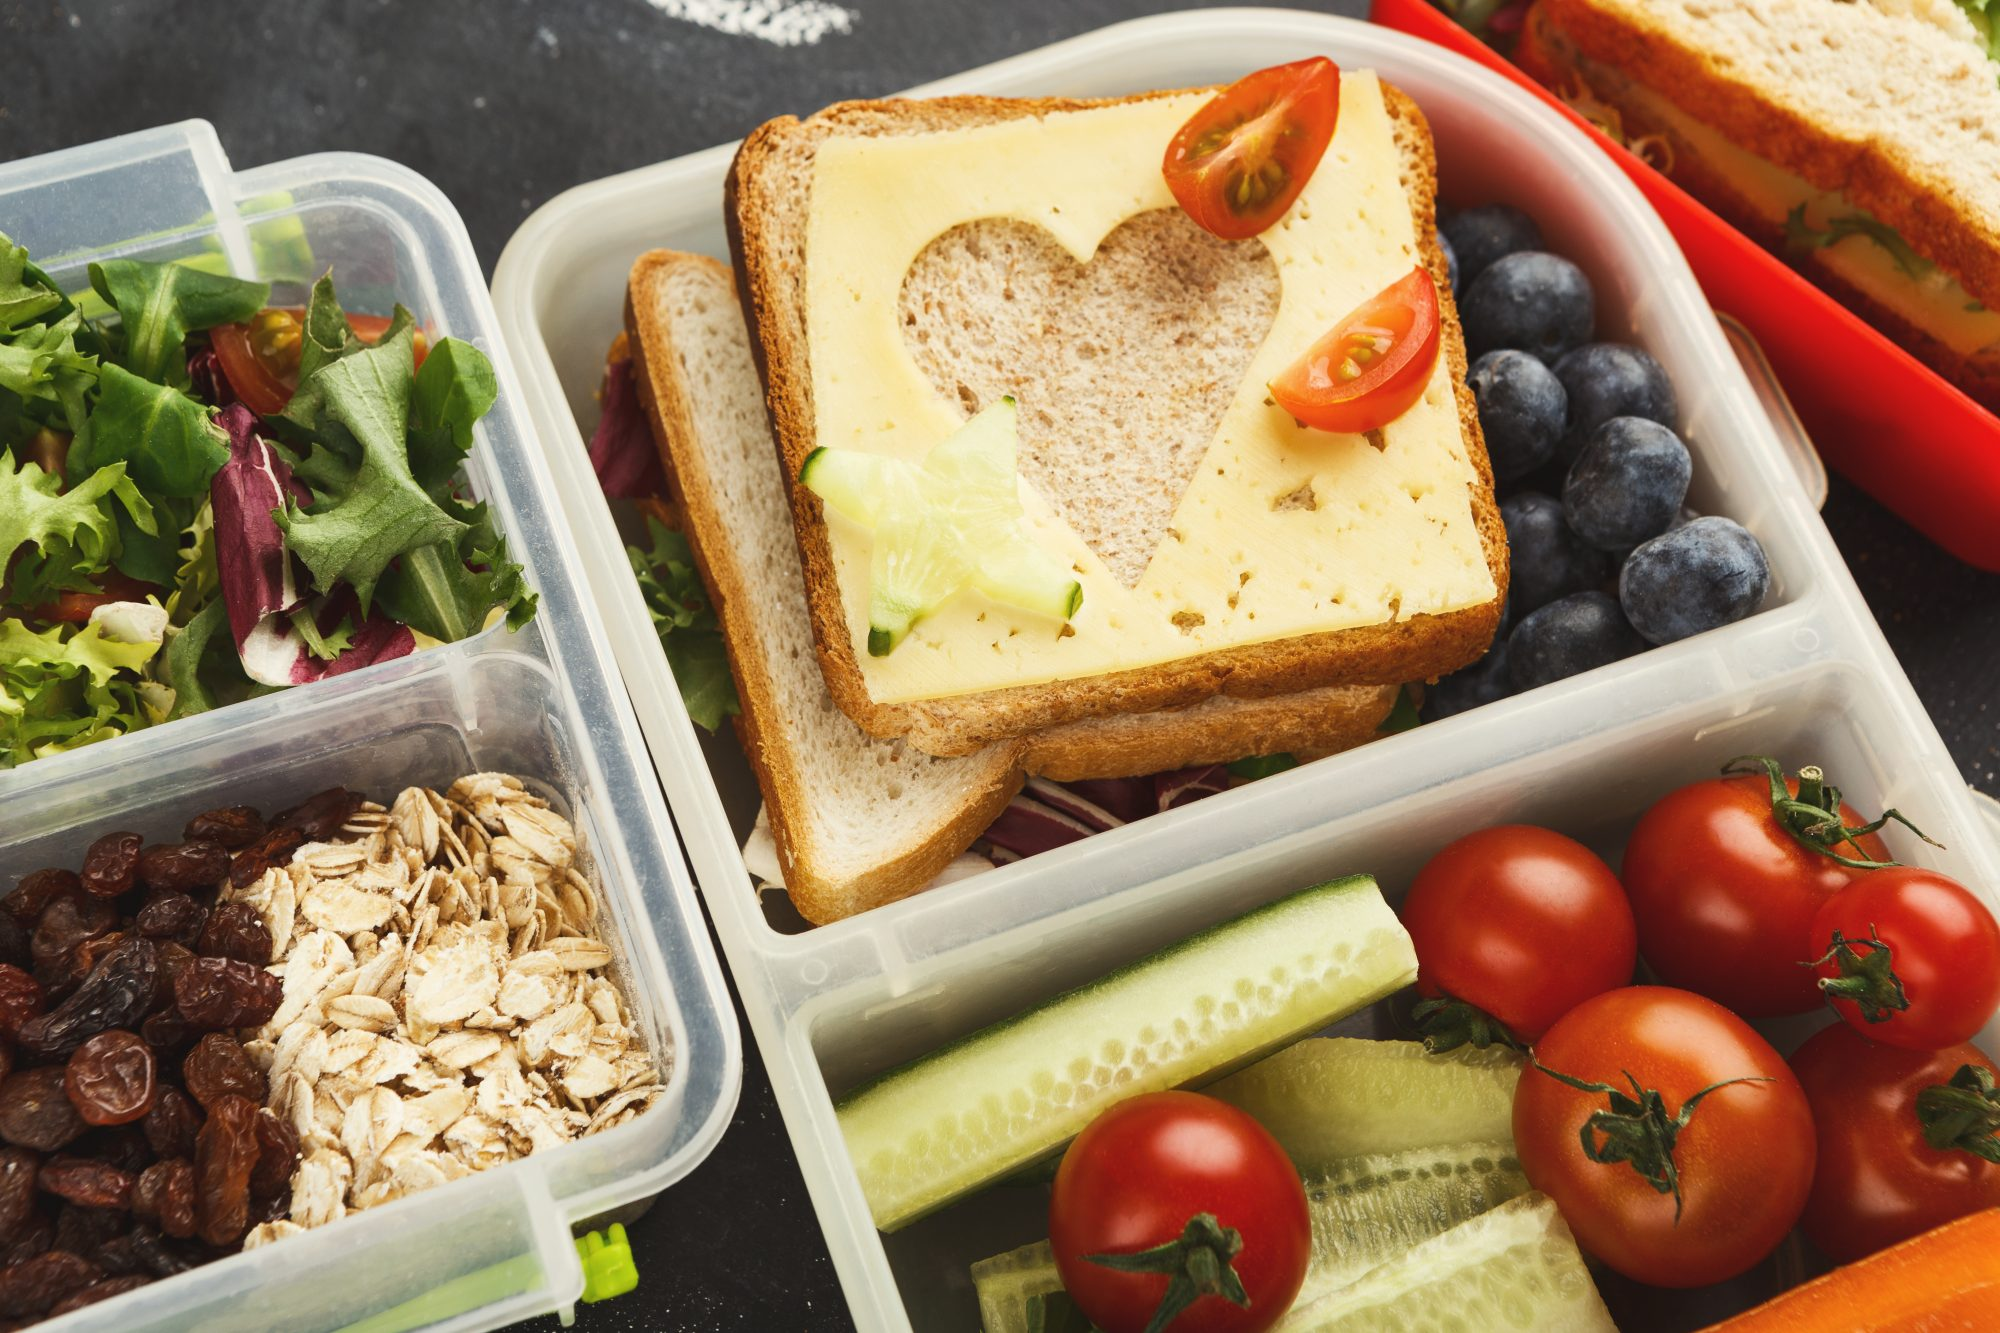 Packing Lunch Containers